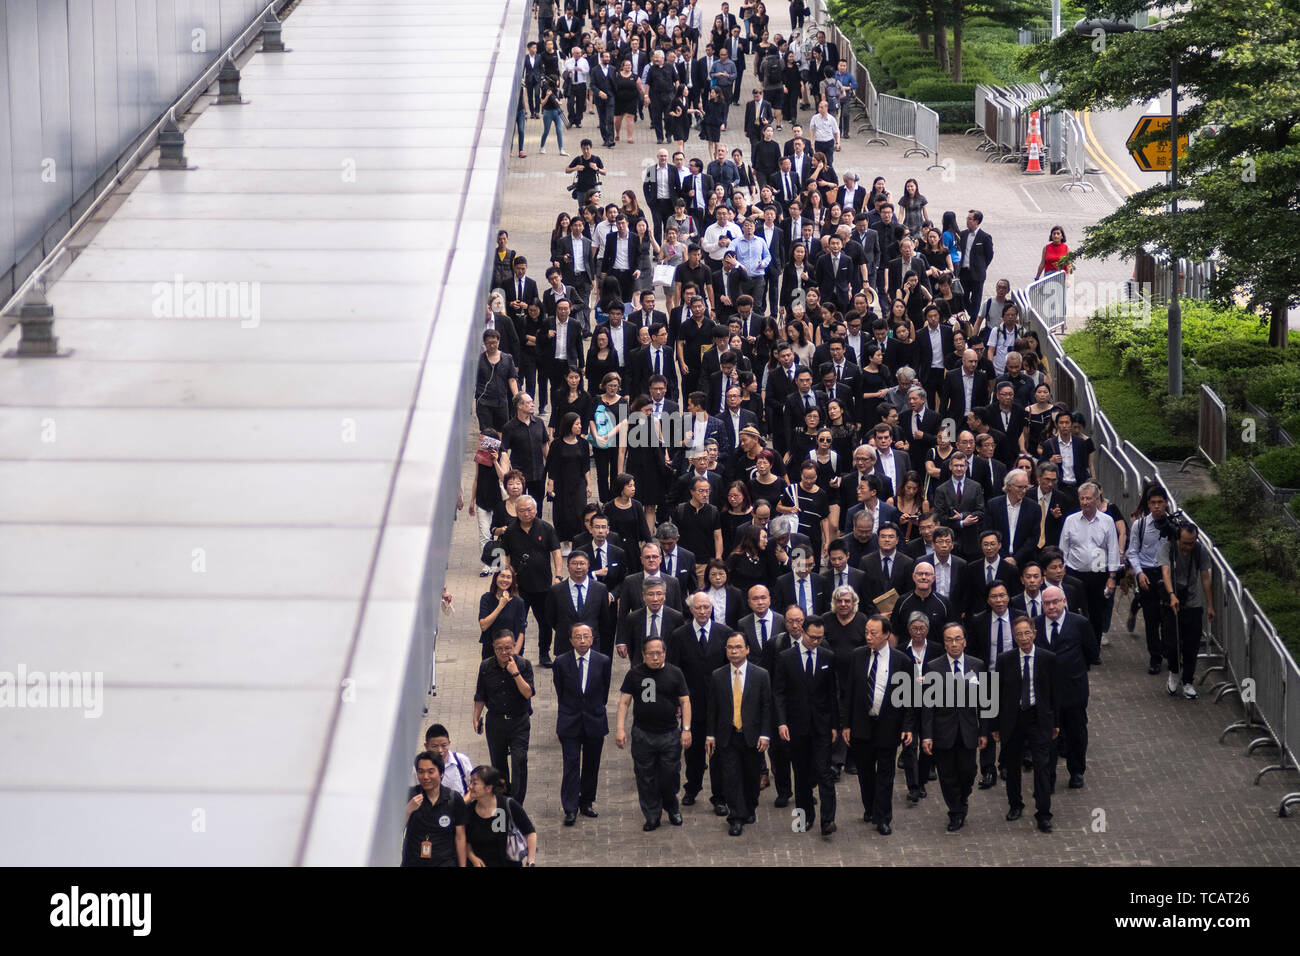 Hundreds of lawyers and legal professionals dress in black take part during the silent march against the extradition bill from the Court of Final Appeal to the Central Government Complex in Hong Kong.  Critics fear any extradition agreement could leave both business figures and dissidents in Hong Kong vulnerable to China's politicized courts, fatally undermining a business hub that has thrived off its reputation for a transparent and independent judiciary. - Stock Image